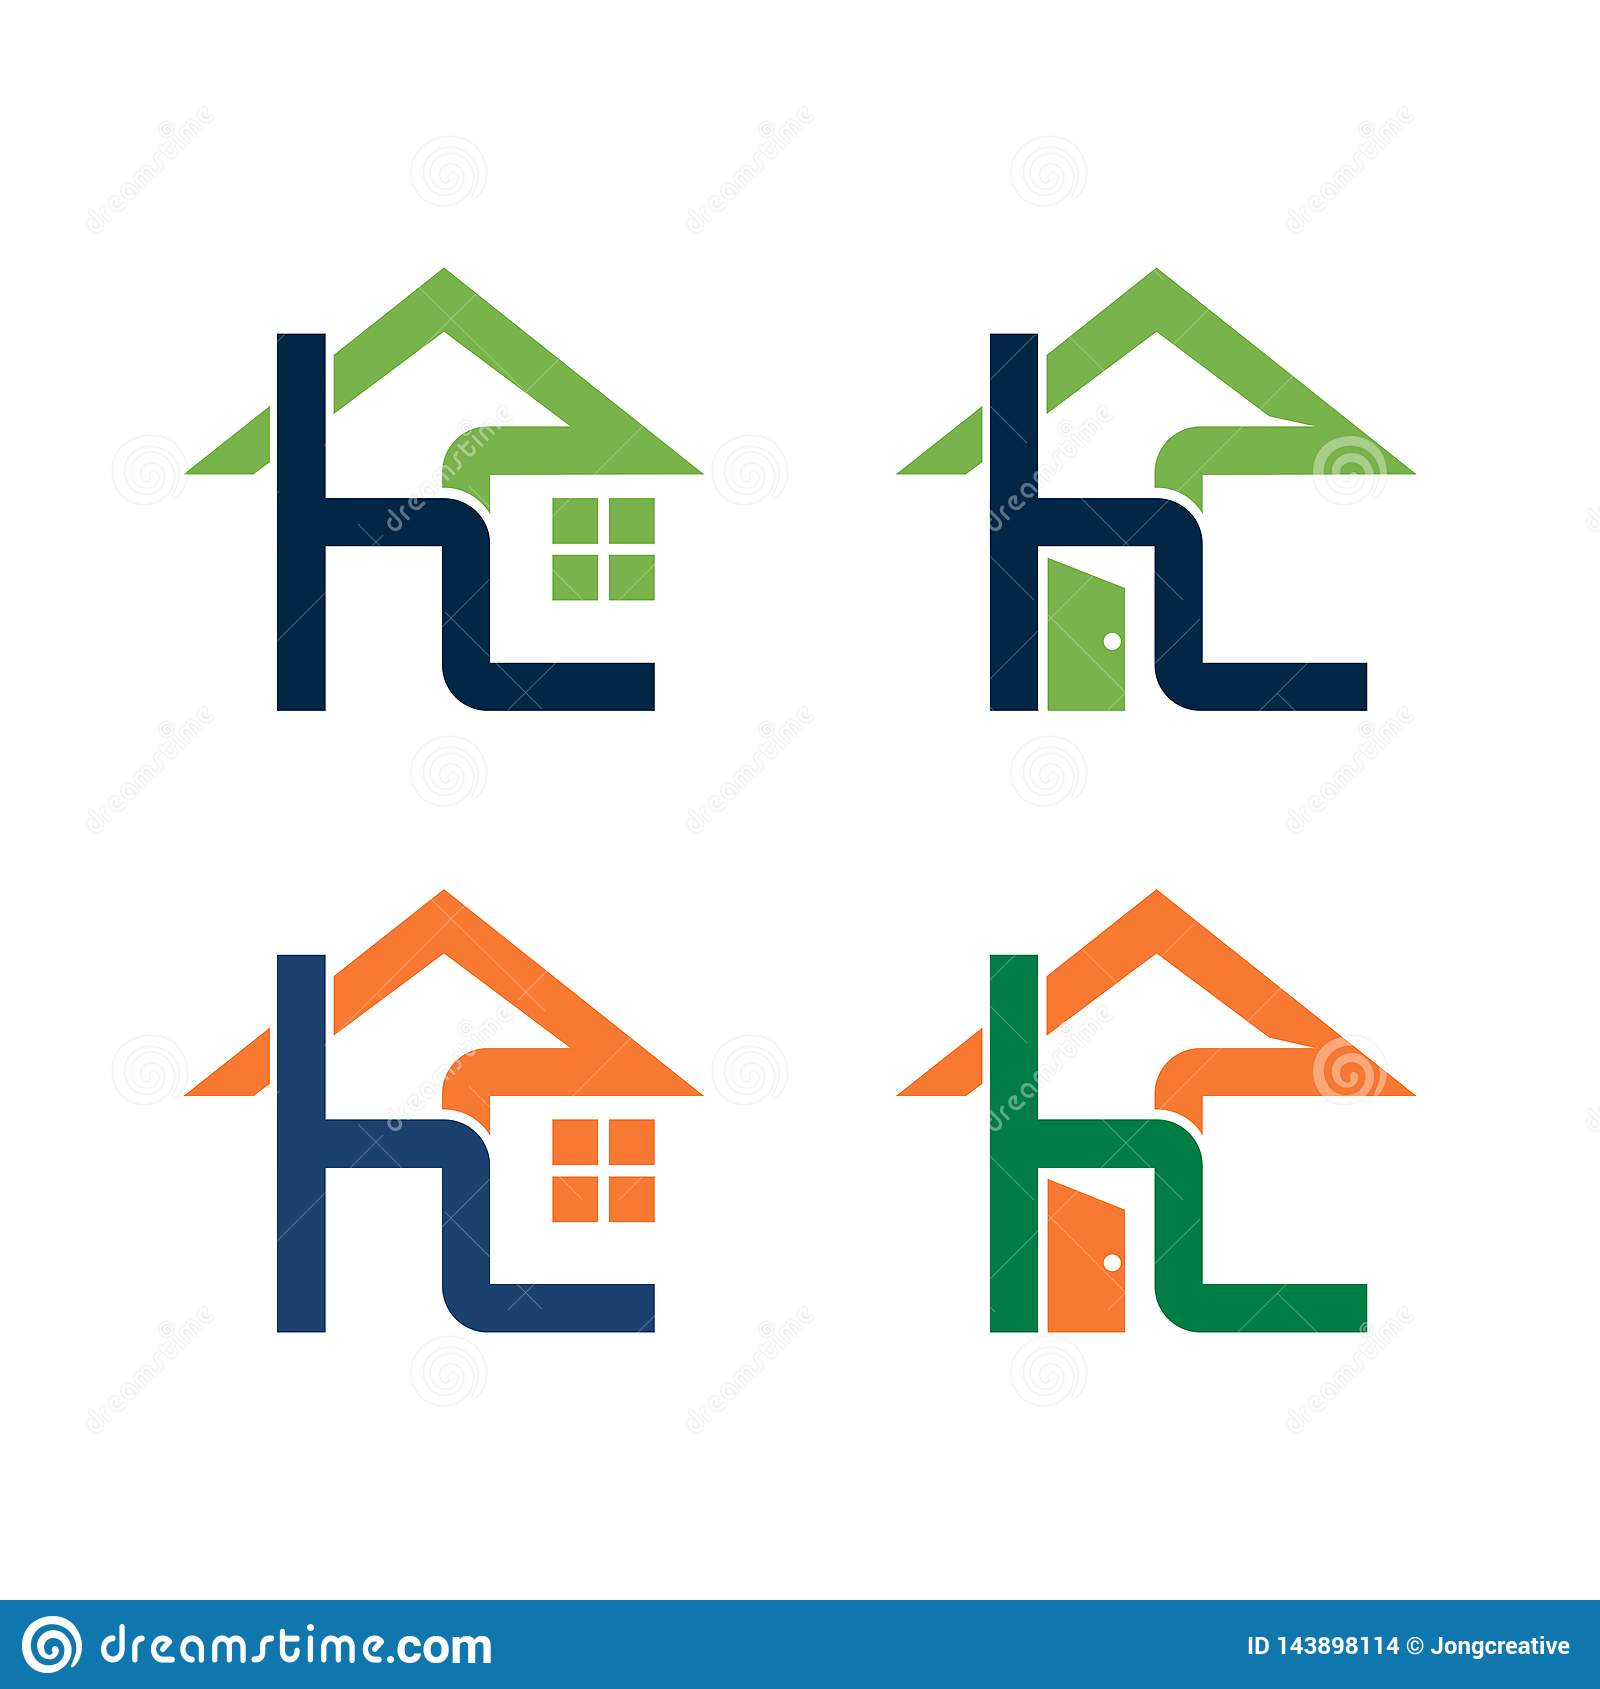 H Letter House Home Residential Cool Logo Template Stock ... on government letter template, therapeutic letter template, investment letter template, corporate letter template, certified letter template, medical letter template, short sale letter template, contractor letter template, move in letter template, service letter template, urban letter template, contract letter template, professional letter template, office letter template, bid request letter template, workplace letter template, plumbing repair letter template, rental letter template, relocation letter template, day care letter template,